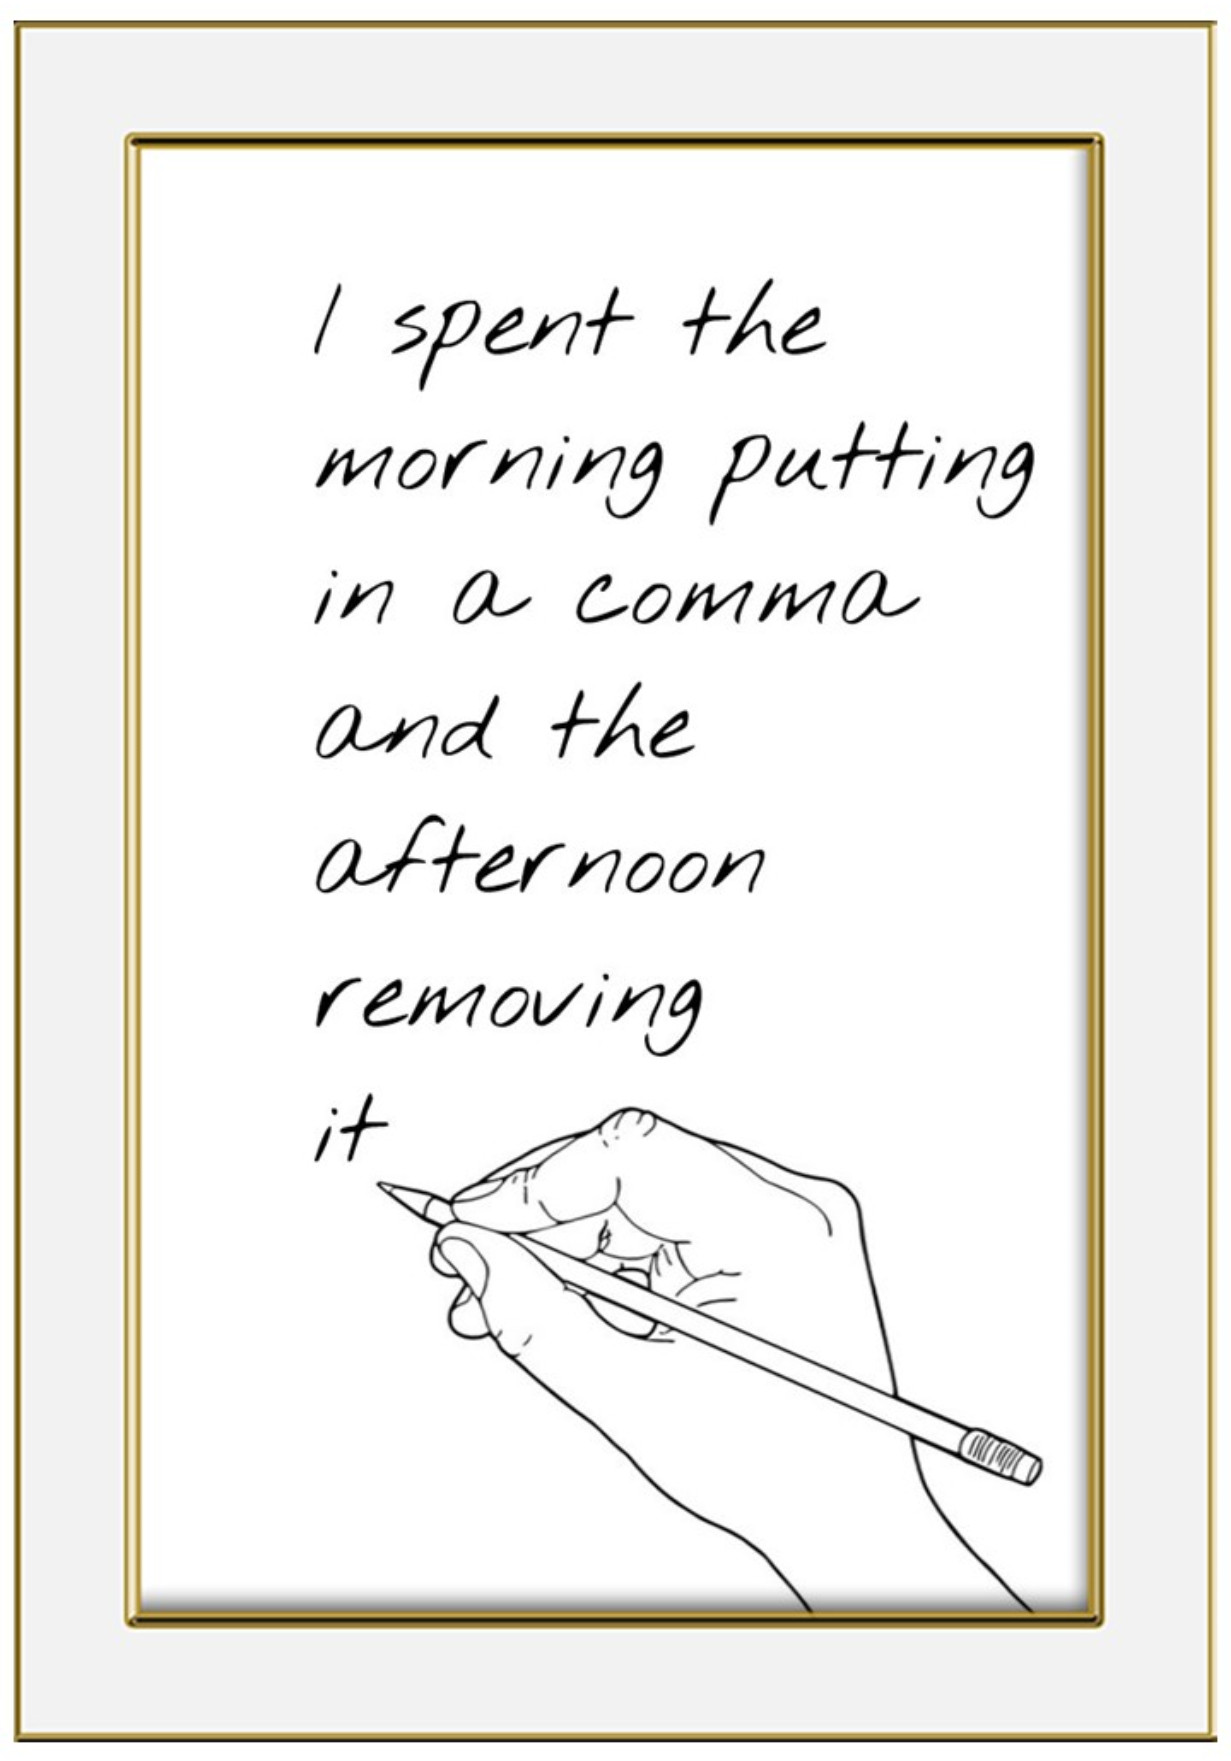 I spent the morning putting in a comma and the afternoon removing it Gustave Flaubert bekitschig blog